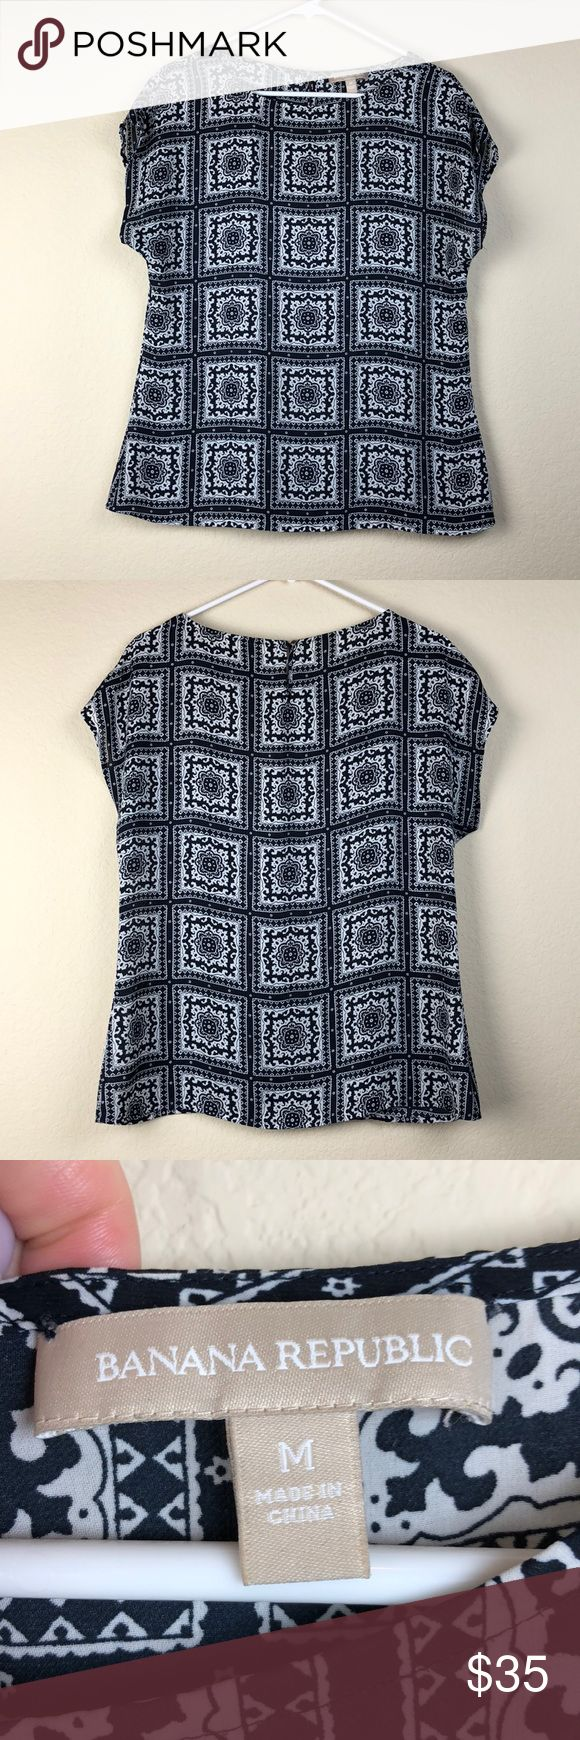 Banana Republic Short Sleeved Printed Blouse Super lightweight printed top from Banana Republic. So pretty and perfect for a hot day.   From shoulder to hem - 25.5 inches  Chest - 18.5 inches Banana Republic Tops Blouses